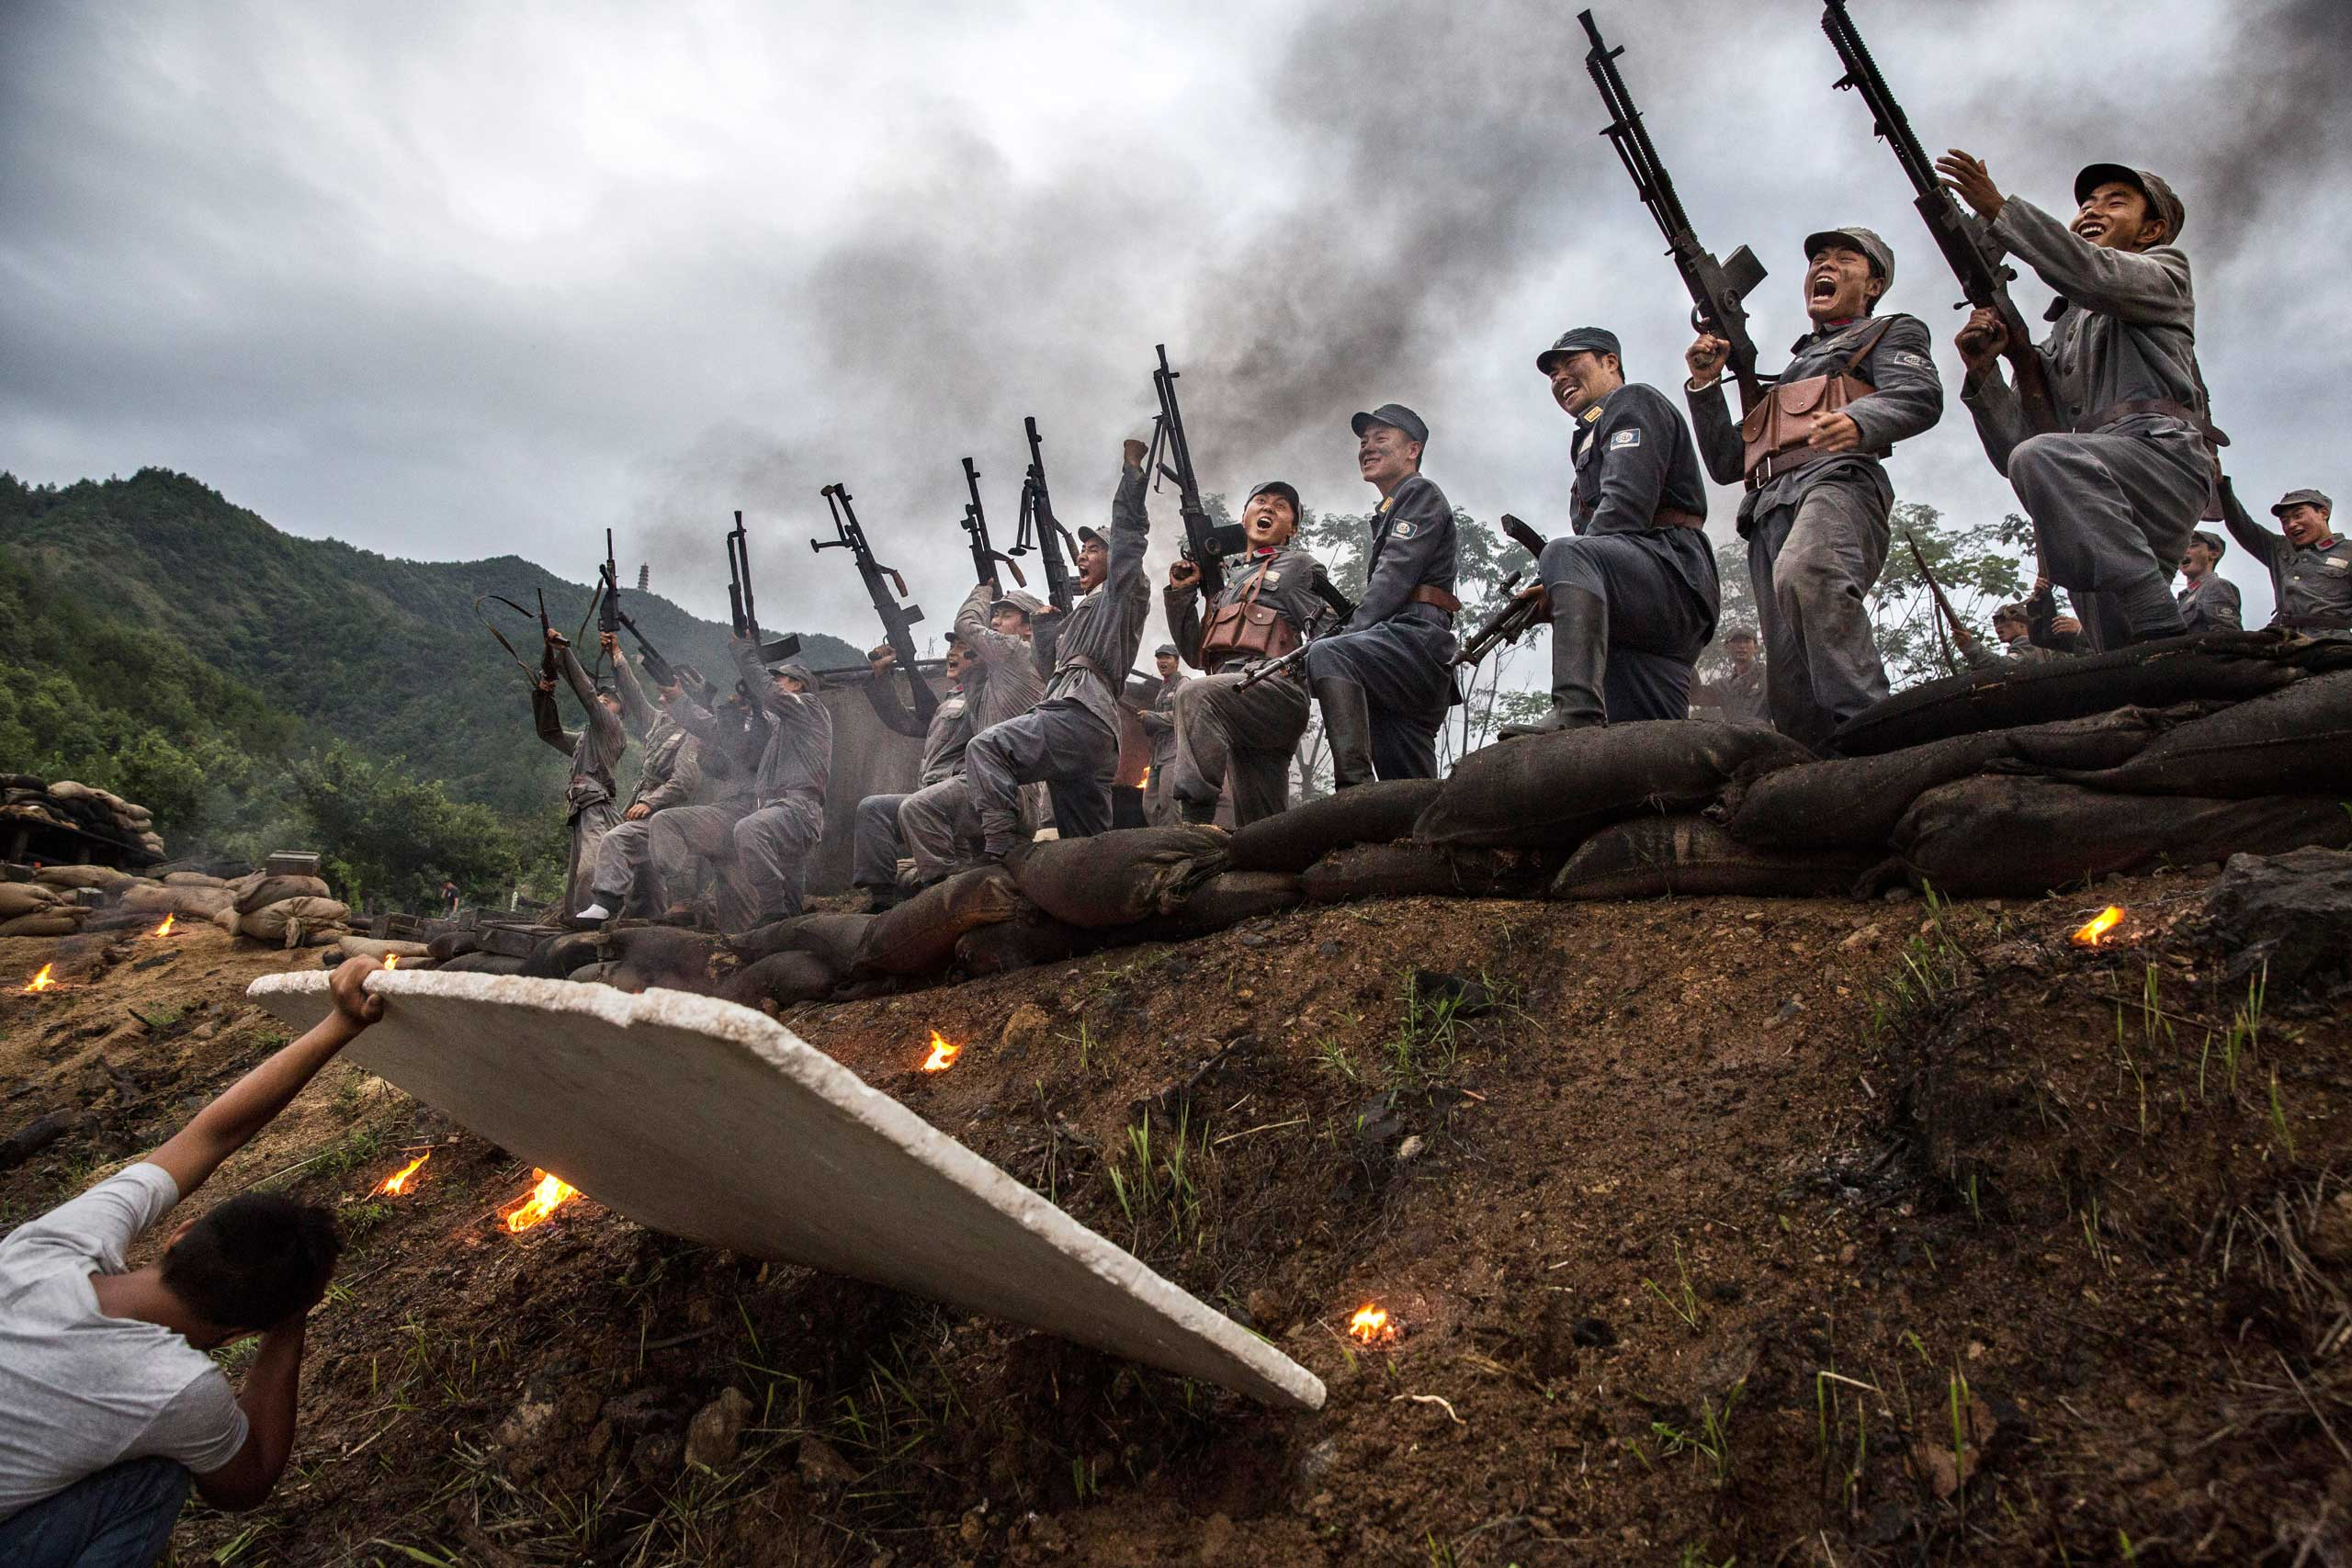 Actors playing Nationalist soldiers shout as they stand above a trench during  filming of a battle segment in the series Legend of the Stupid Guy, in Hengdian, on Aug. 11, 2015.